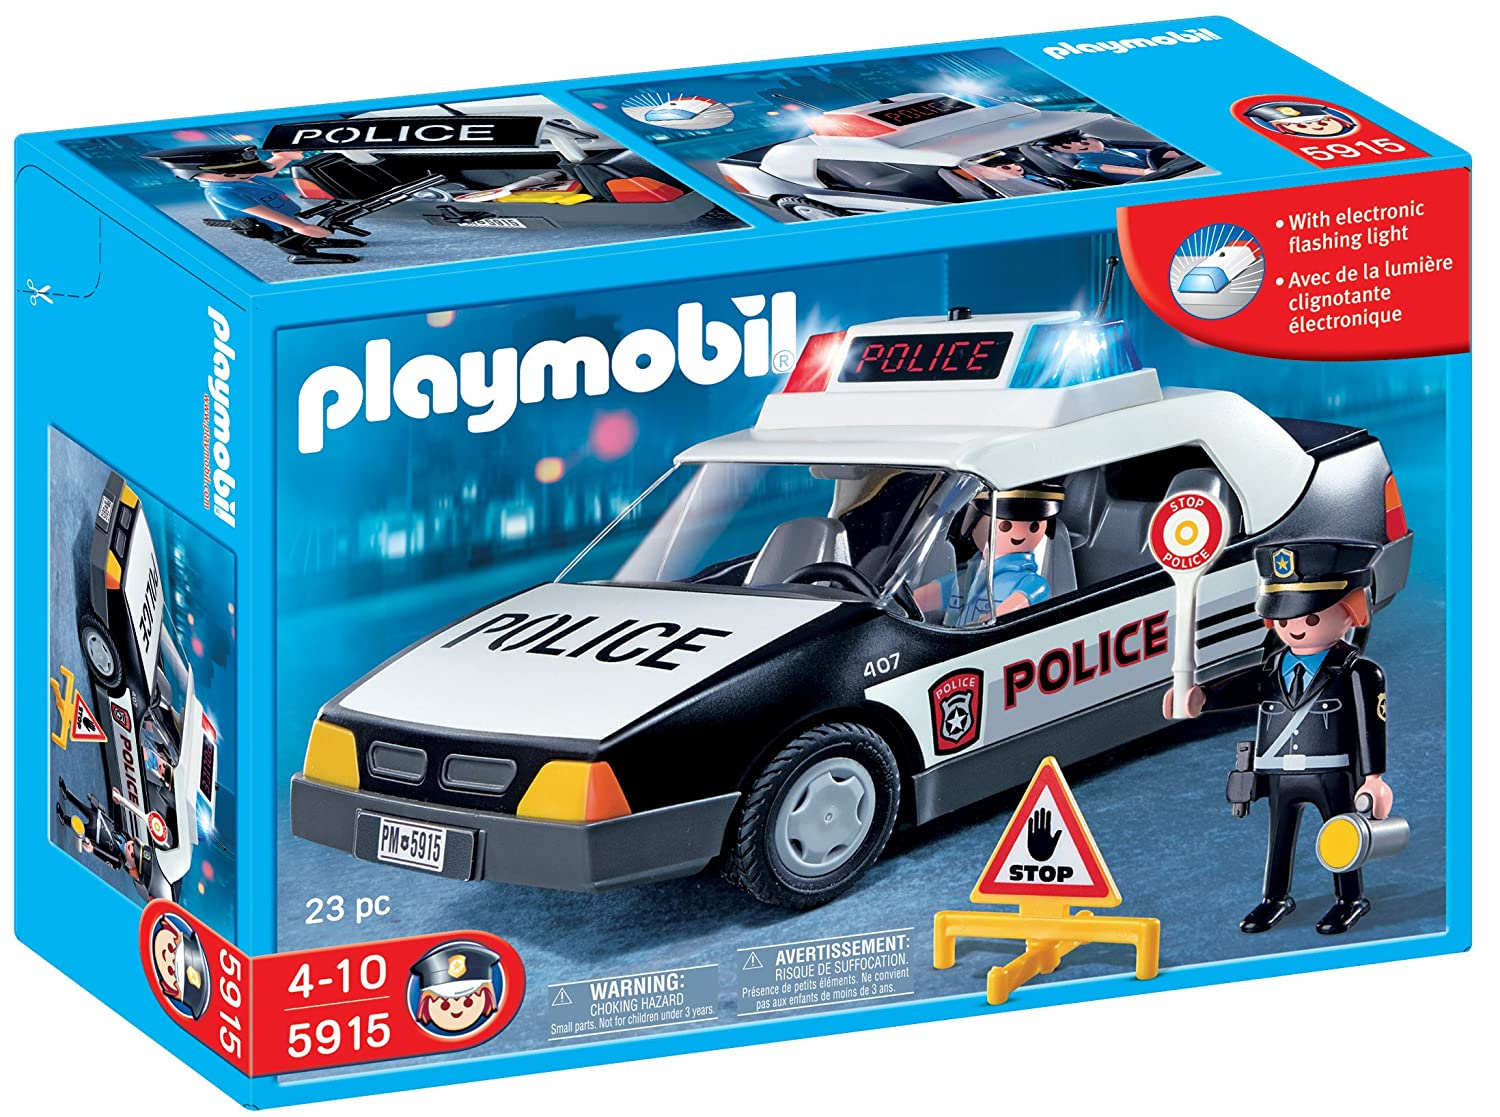 playmobil police car amazoncouk toys games - Playmobile Police